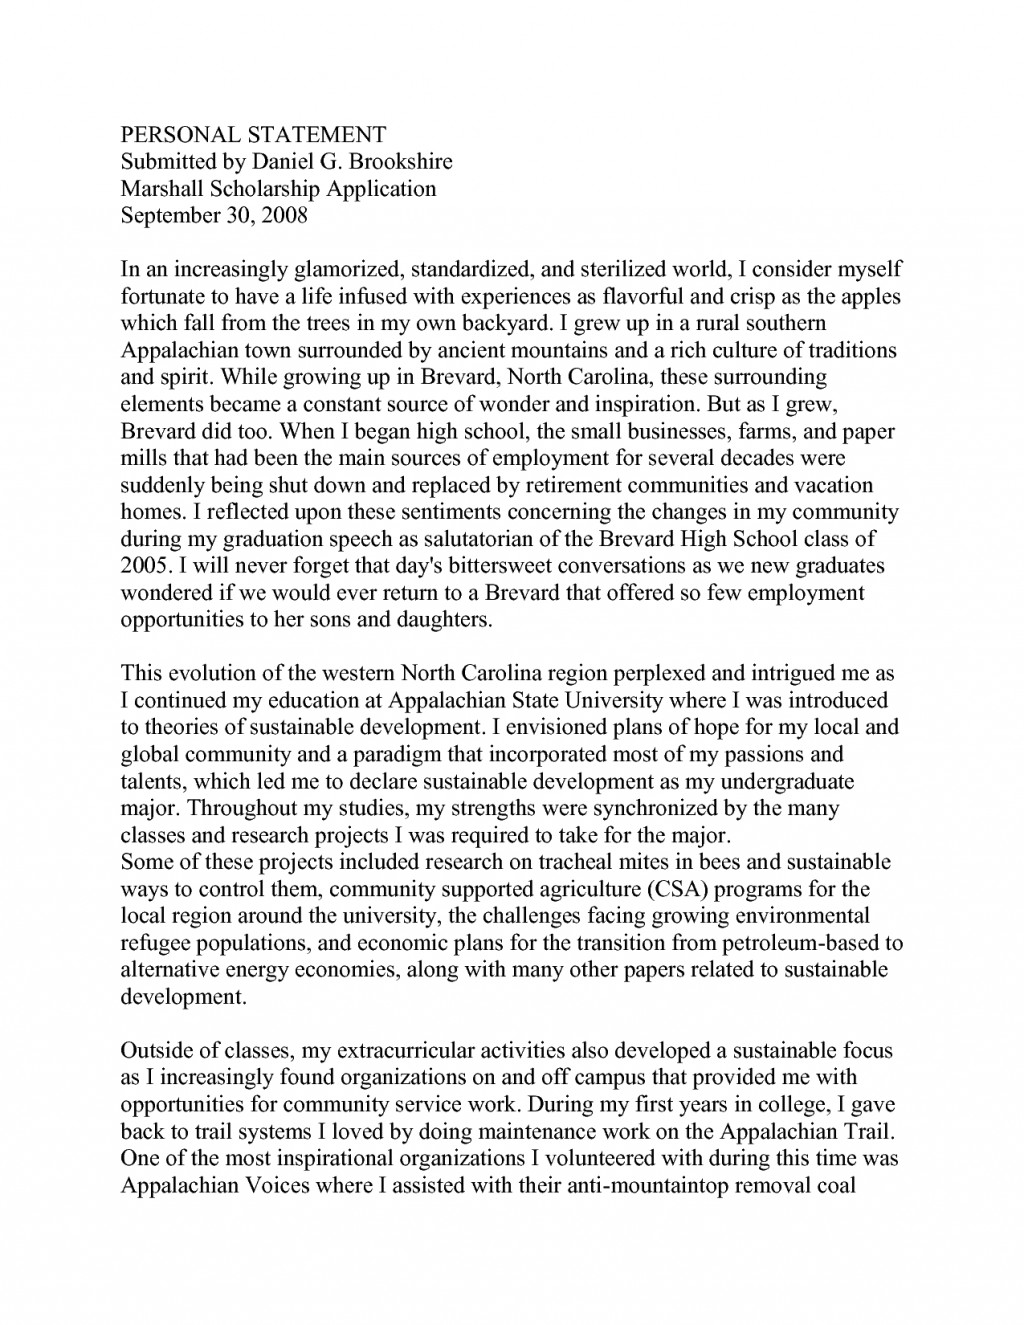 003 College Personal Statement Essays Marvelous Essay Examples Large